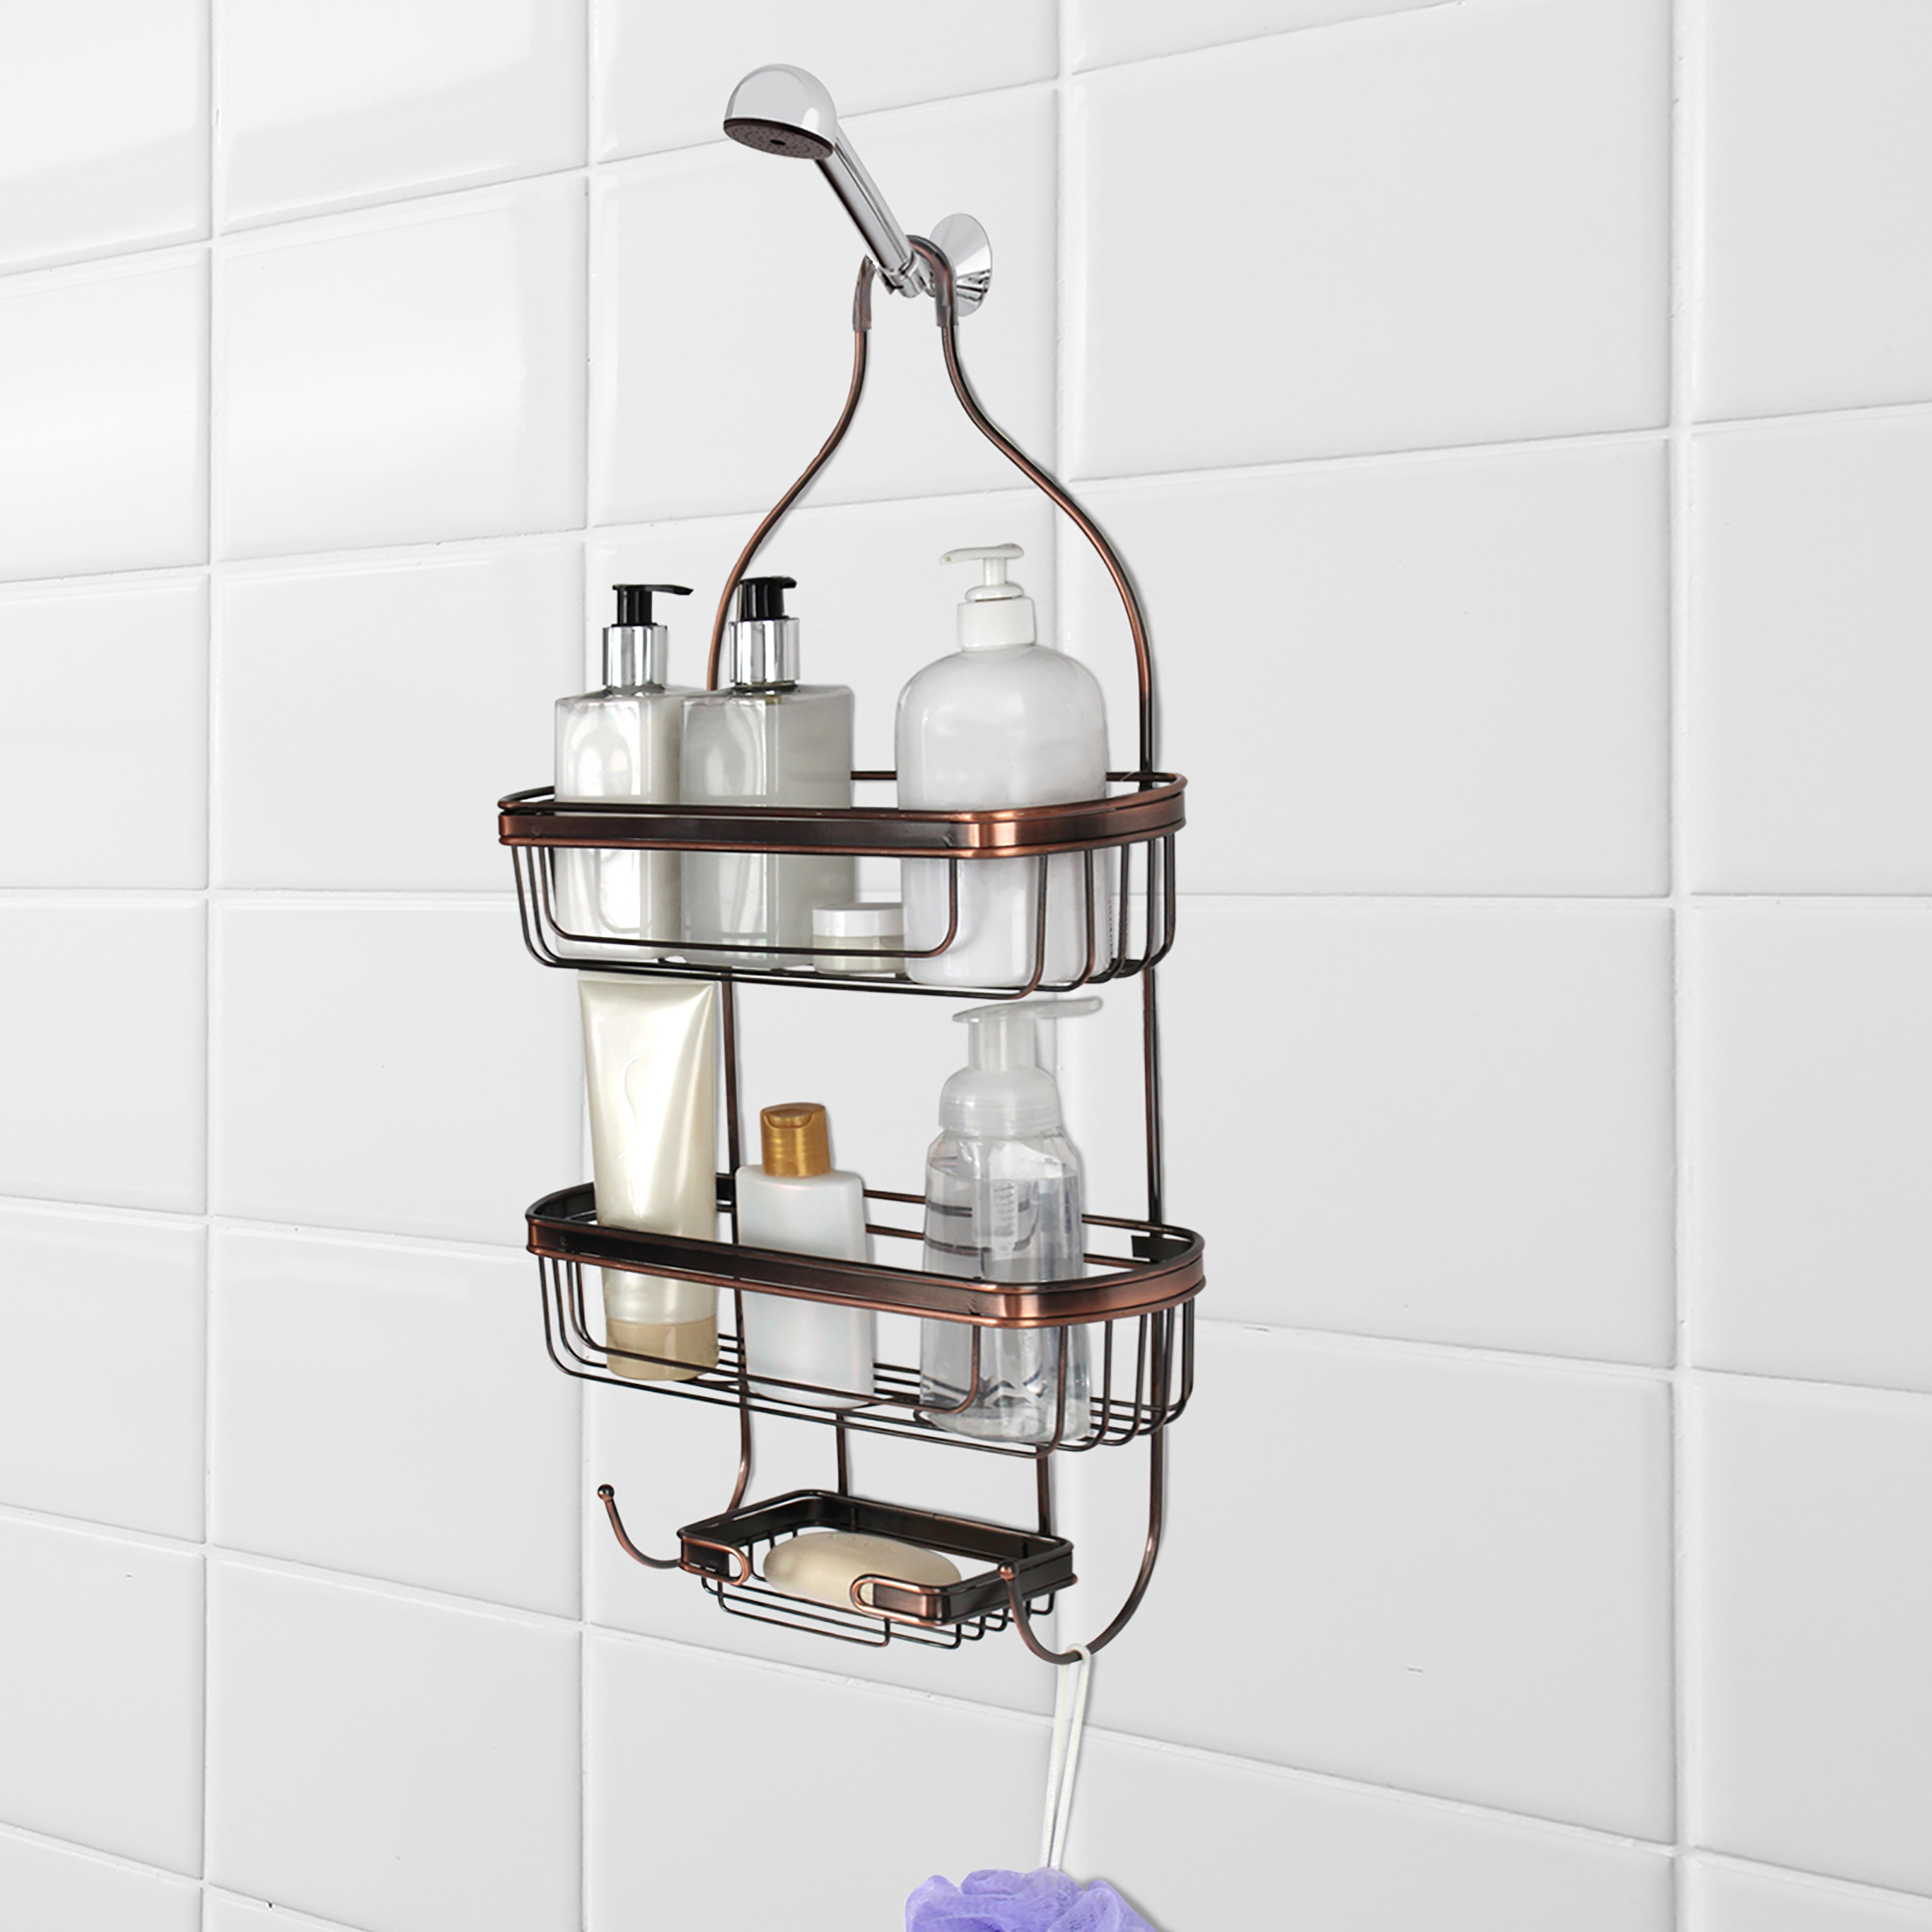 Splash Home Shower Caddy Bathroom Hanging Head Two Basket Organizers Plus Dish for Storage Shelves for Shampoo, Conditioner and Soap - OIL RUBBED BRONZE